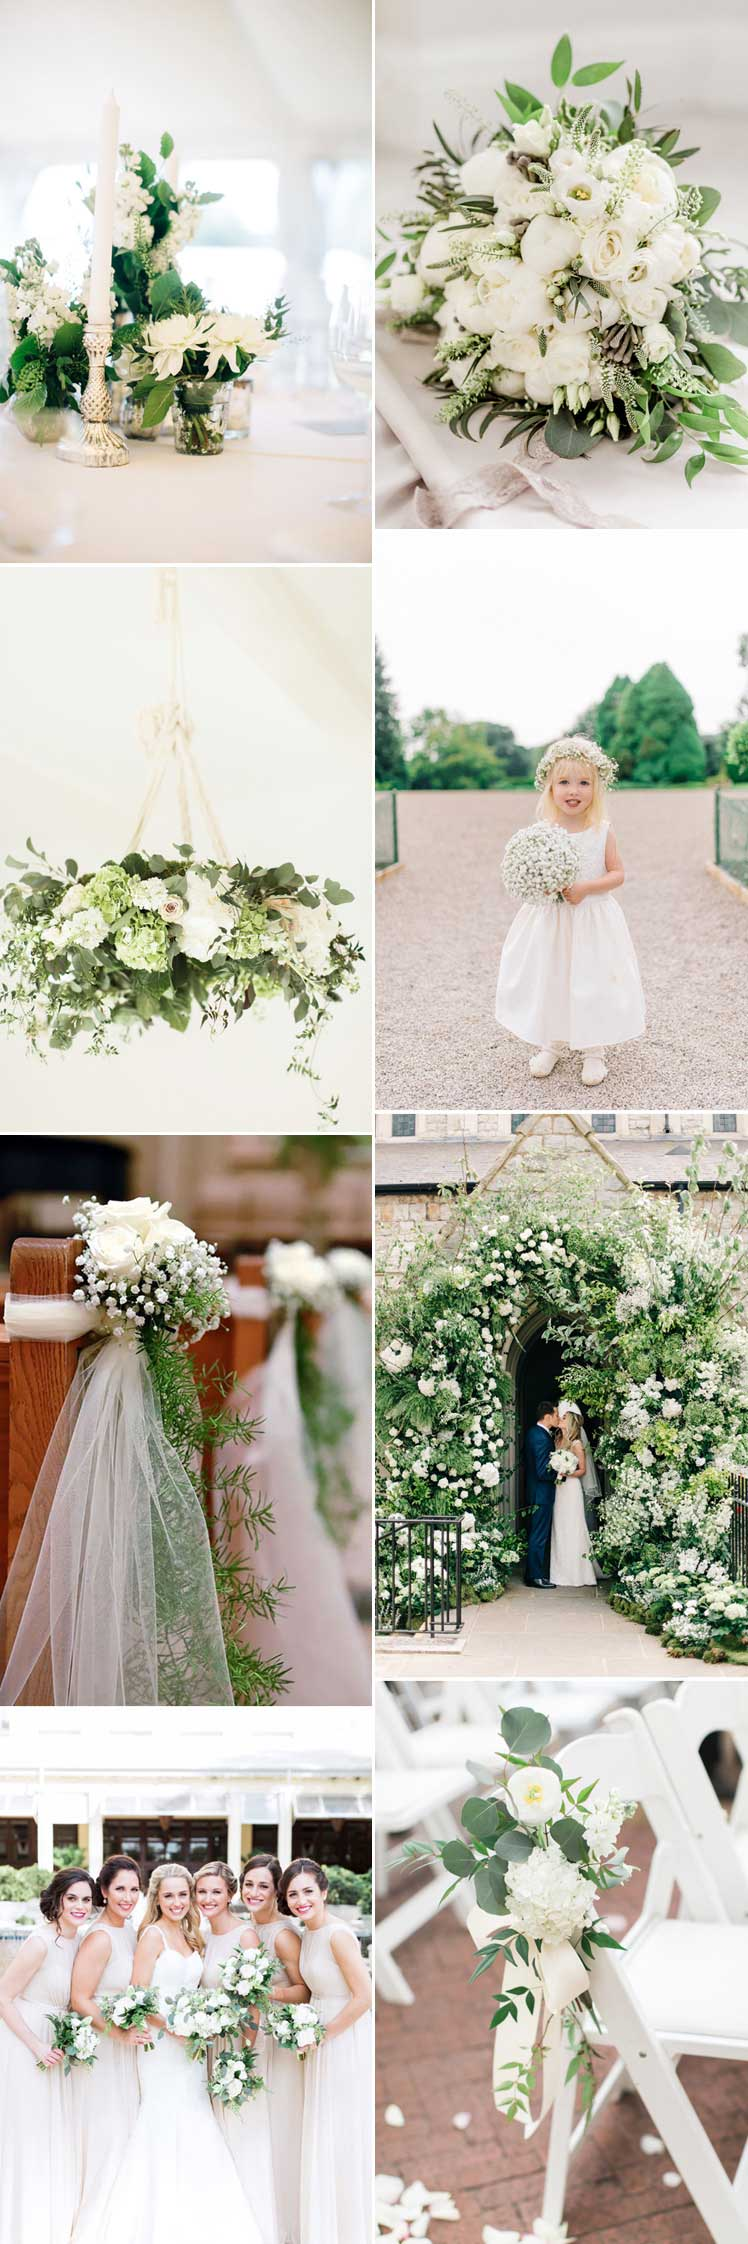 all white spring wedding flowers for your wedding